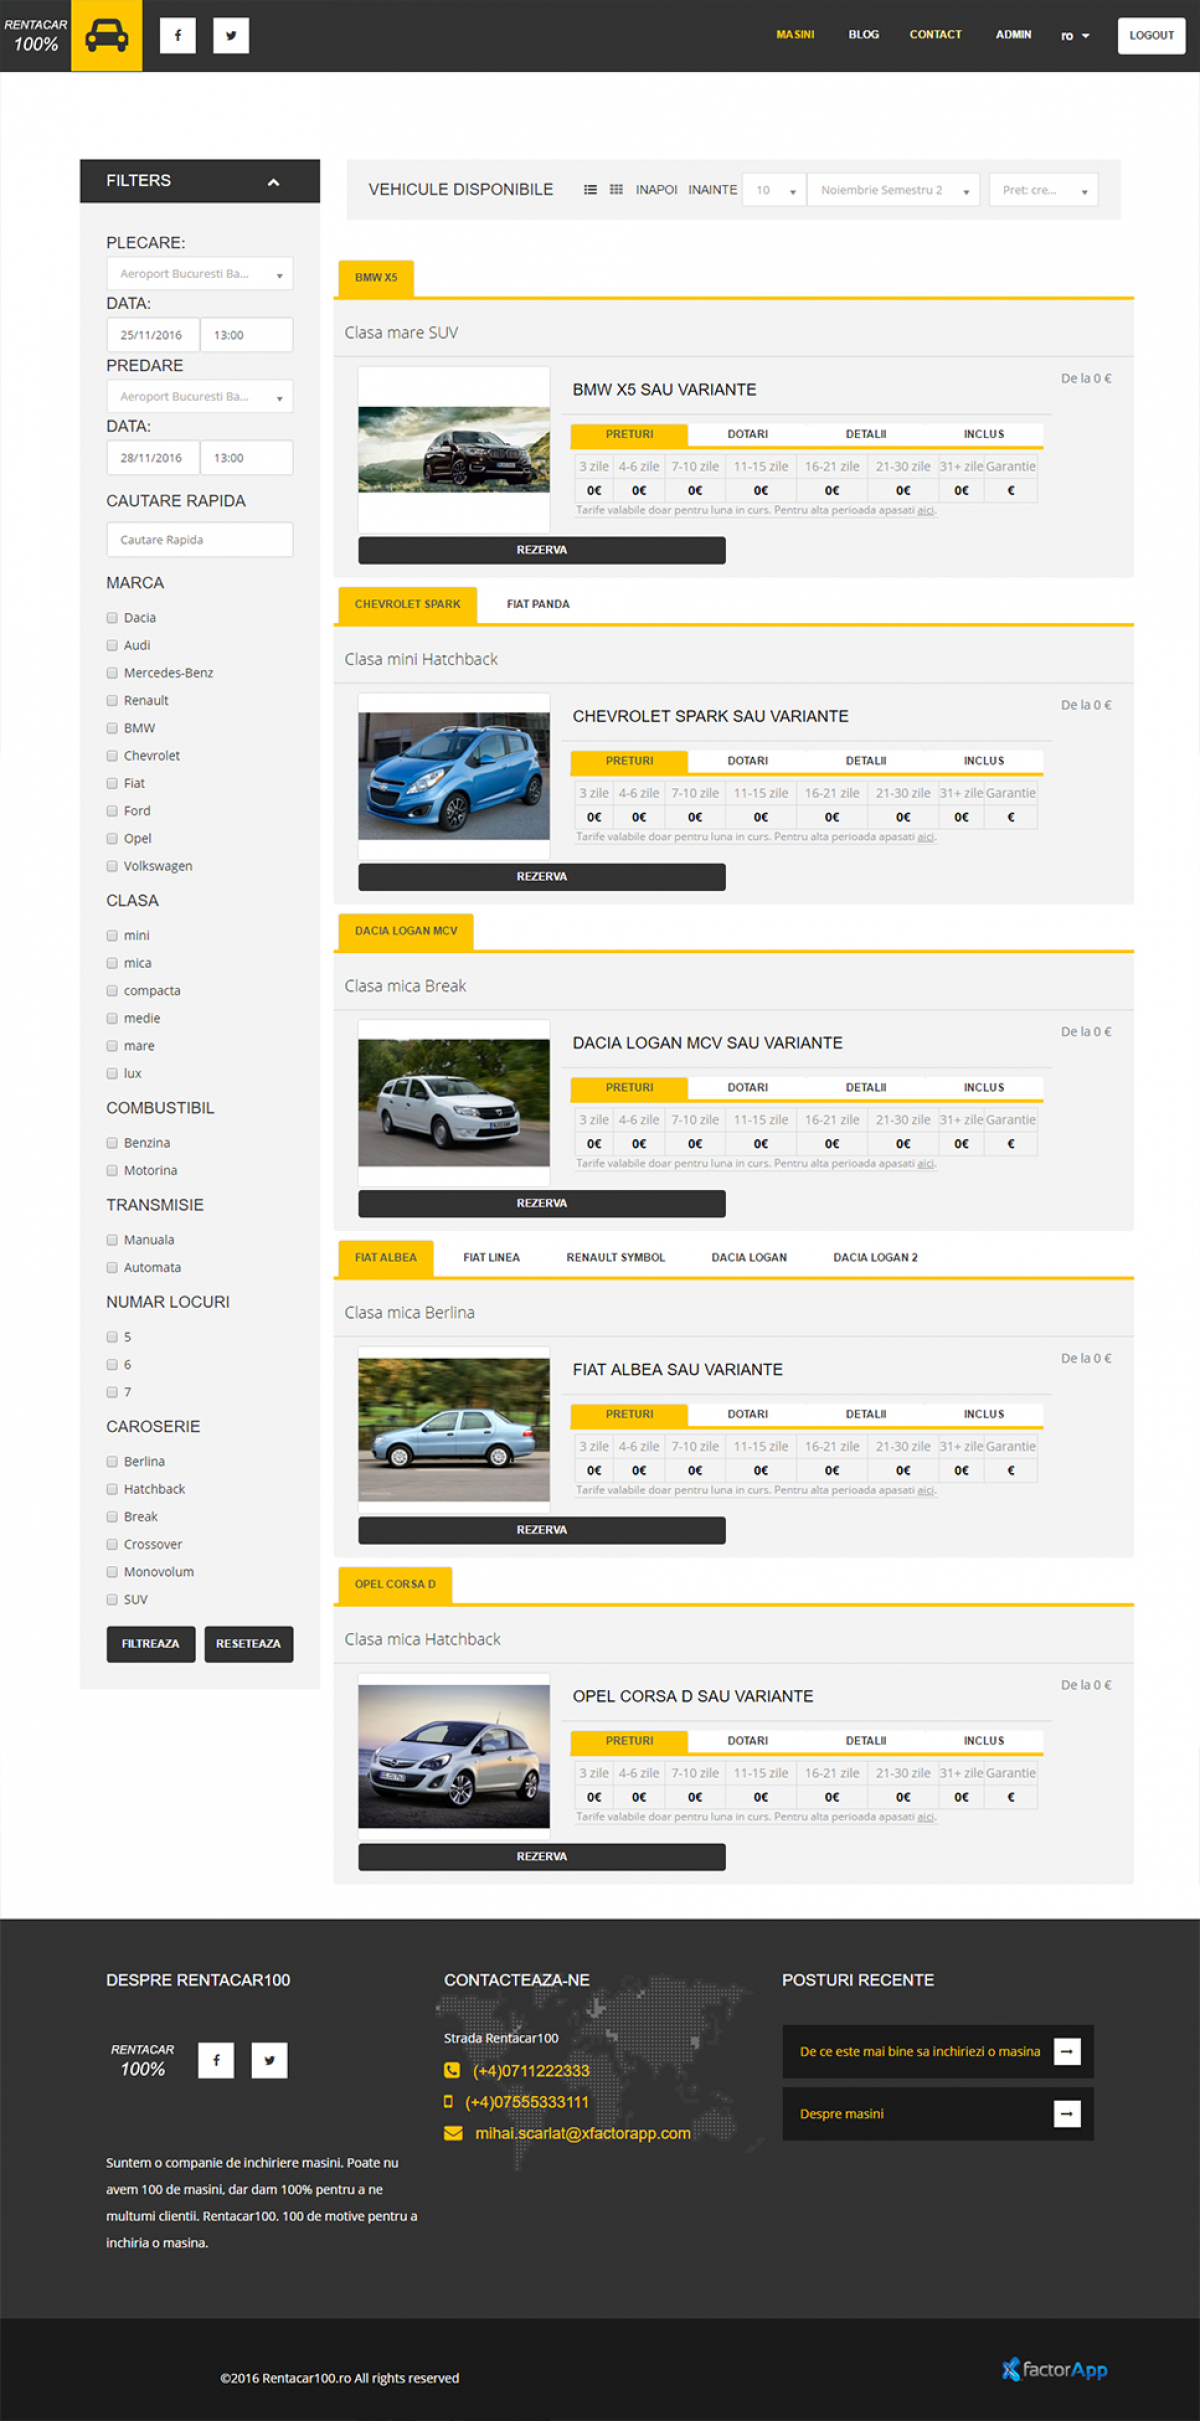 Website and Application for Car Rental Company - Rentacar100